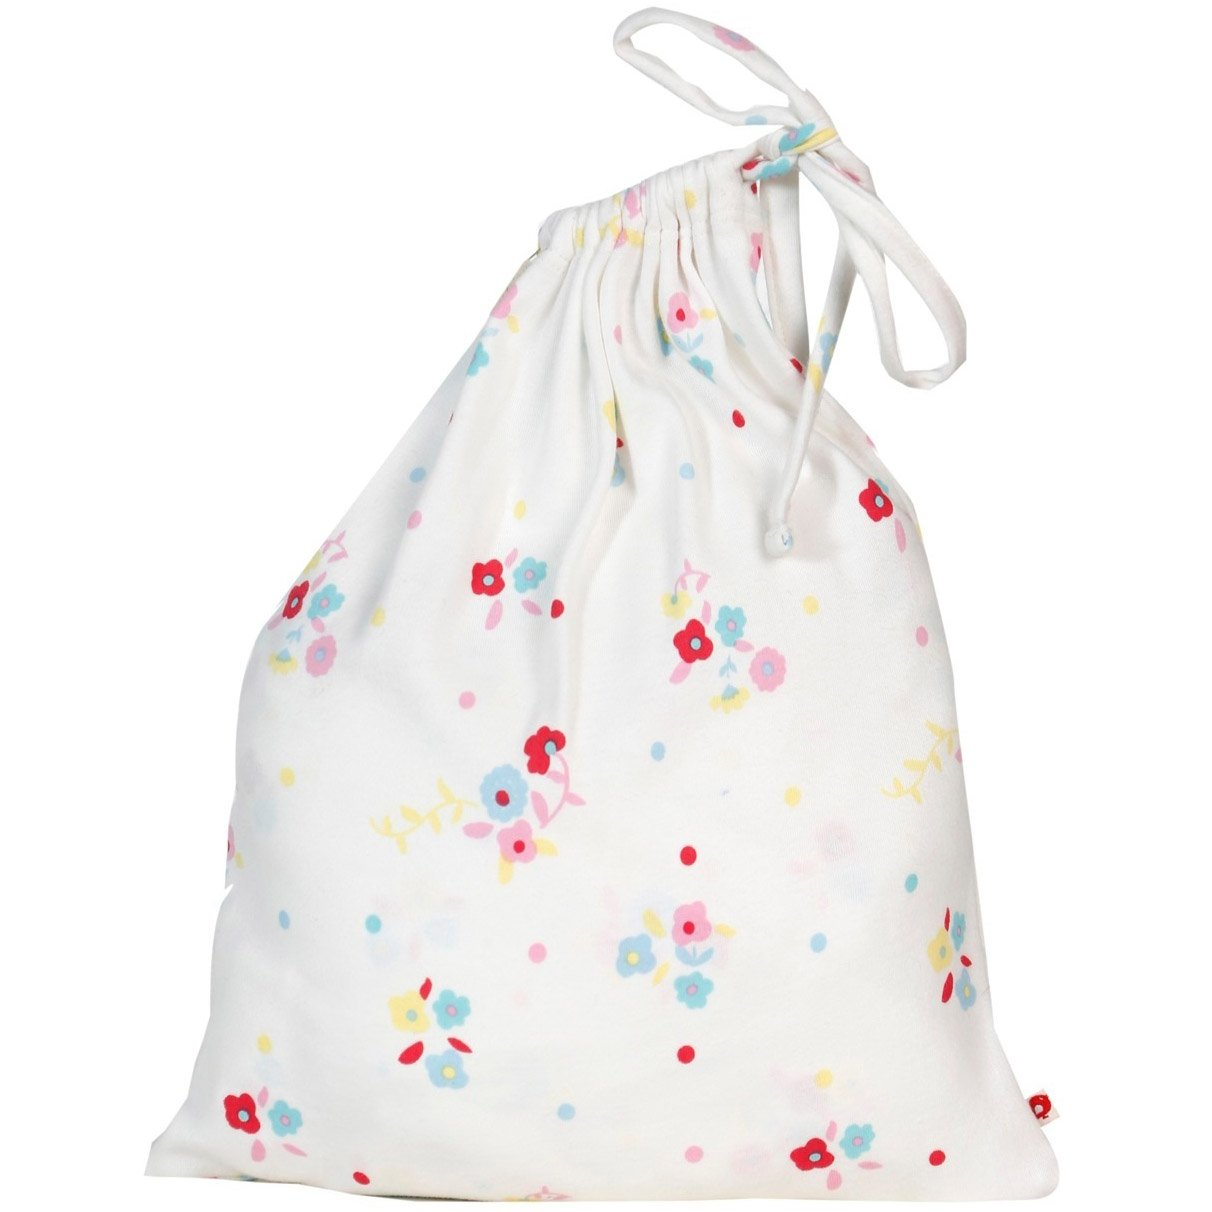 Piccalilly Baby Girl Cot Bed Fitted Sheet Organic Cotton Retro Pink Floral 140 x 70 cm